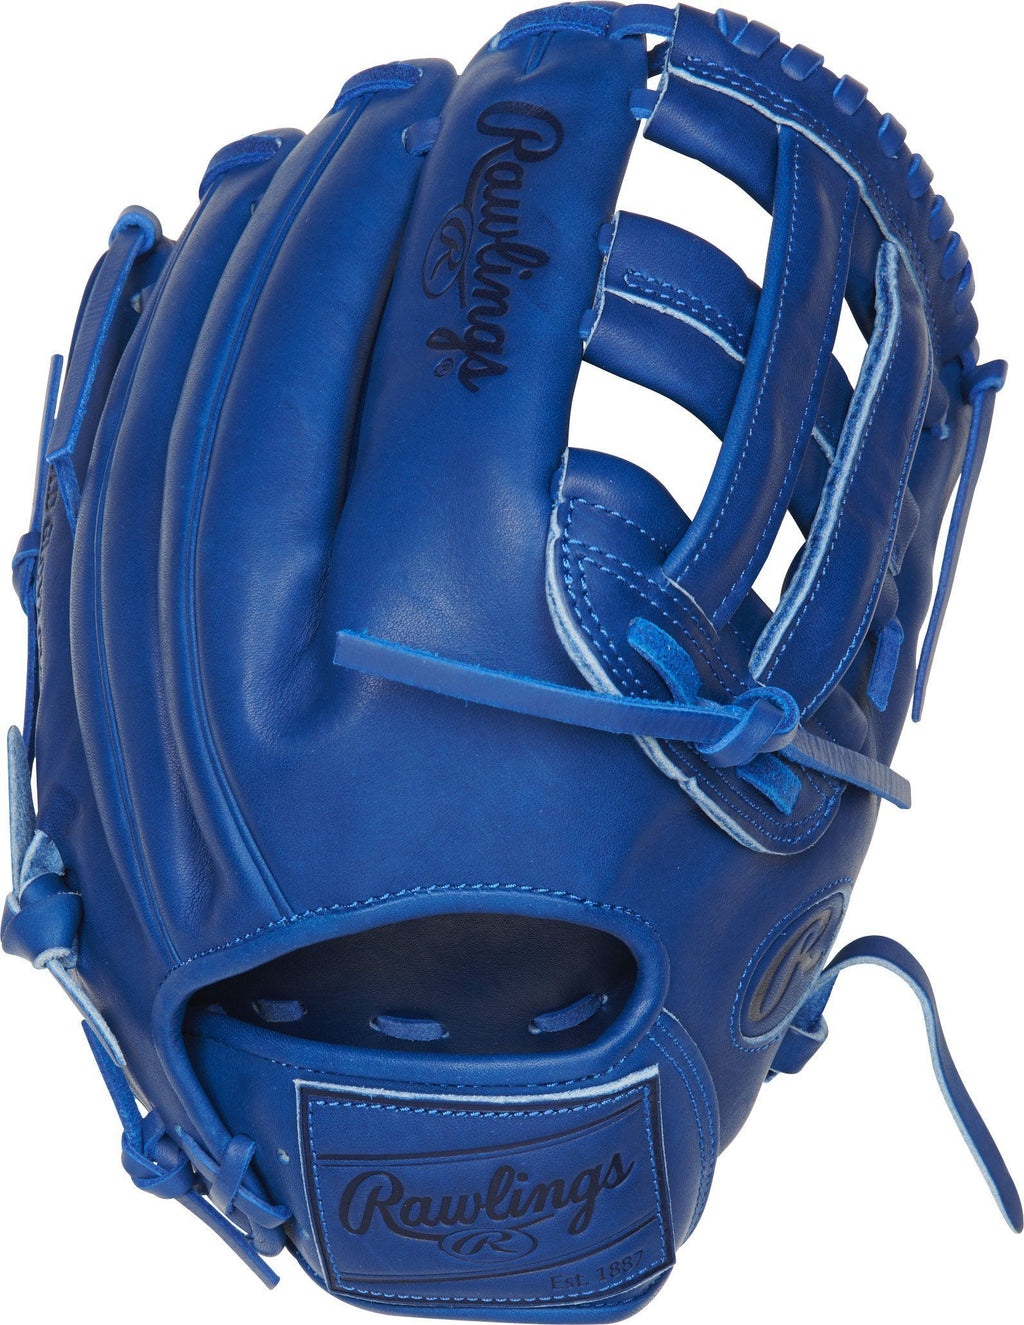 "Rawlings Heart of the Hide 12.25"" Pro Label Storm Baseball Glove: PROKB17-6R"